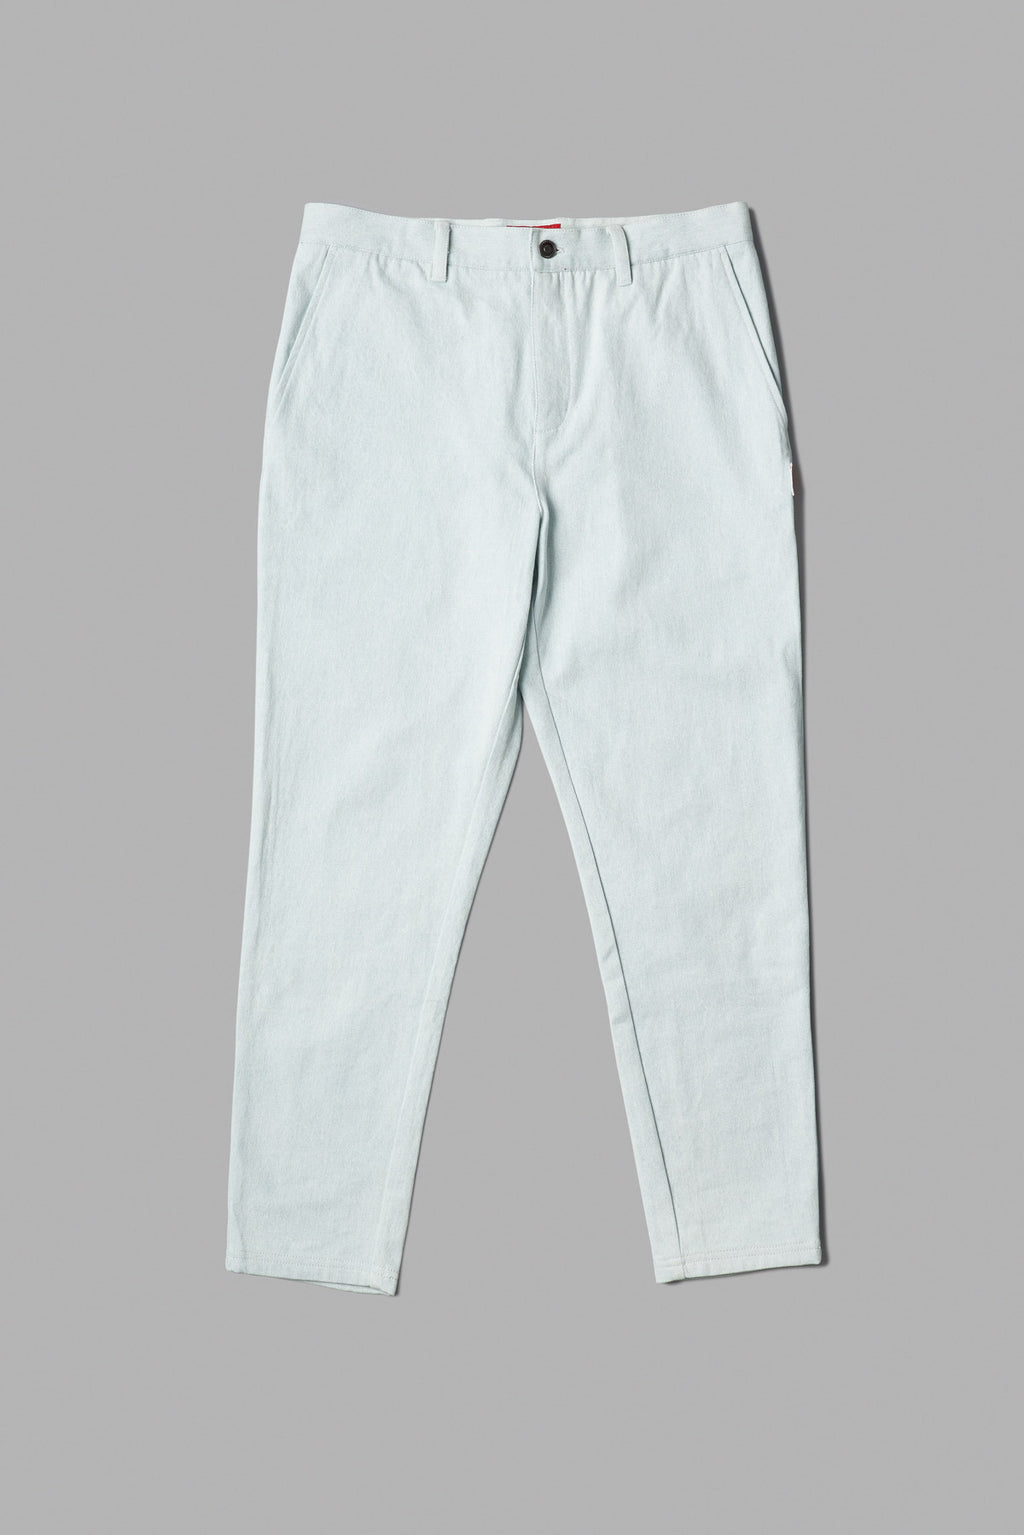 CAROTA Trousers | Denim